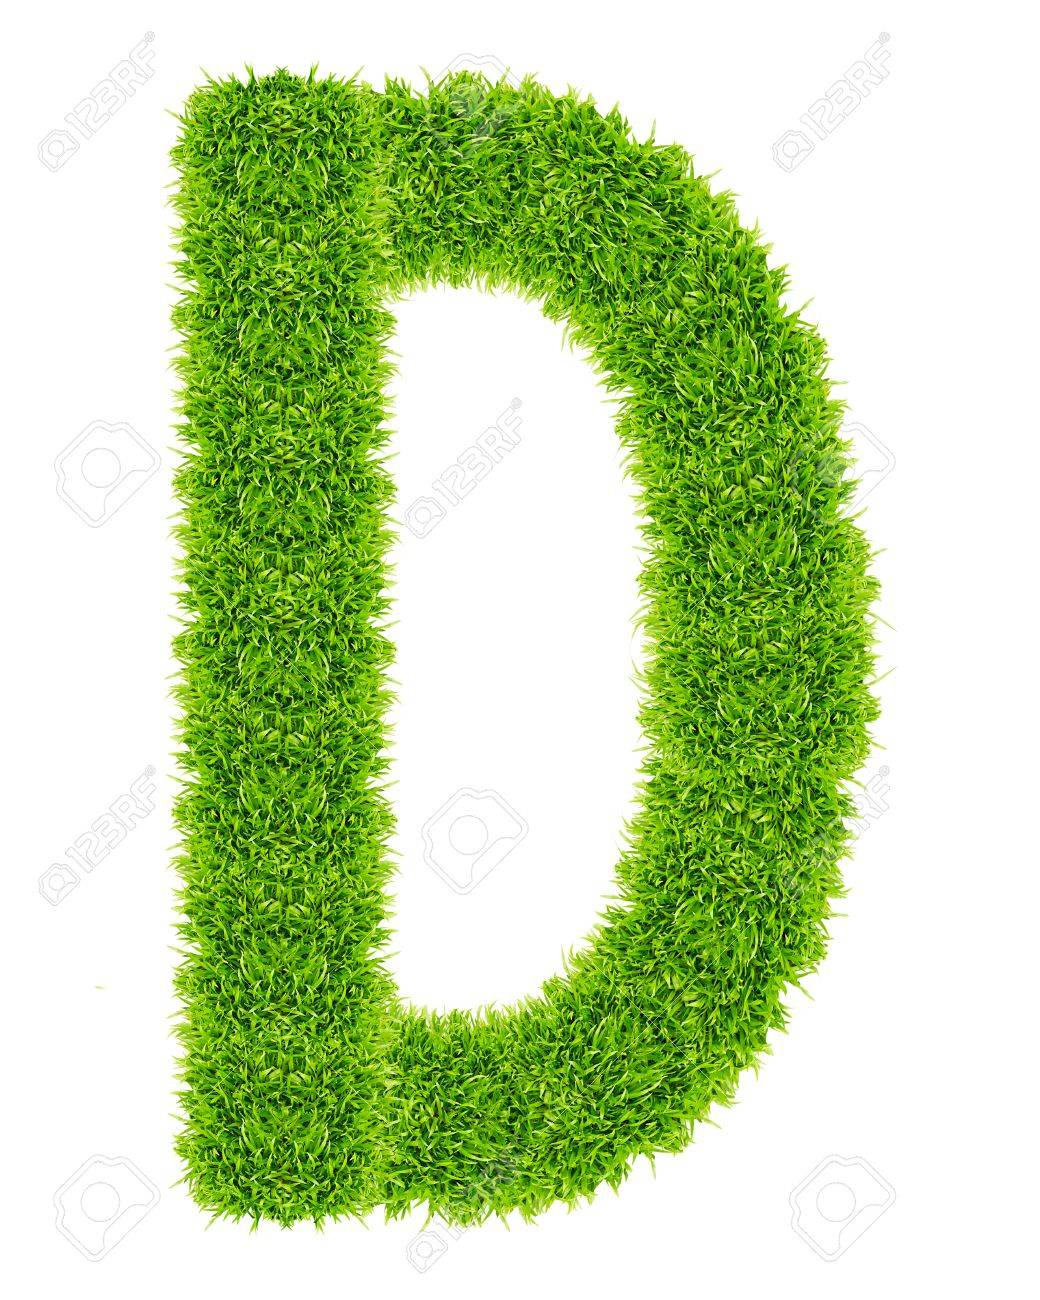 green grass letter D Isolated Stock Photo - 9715246